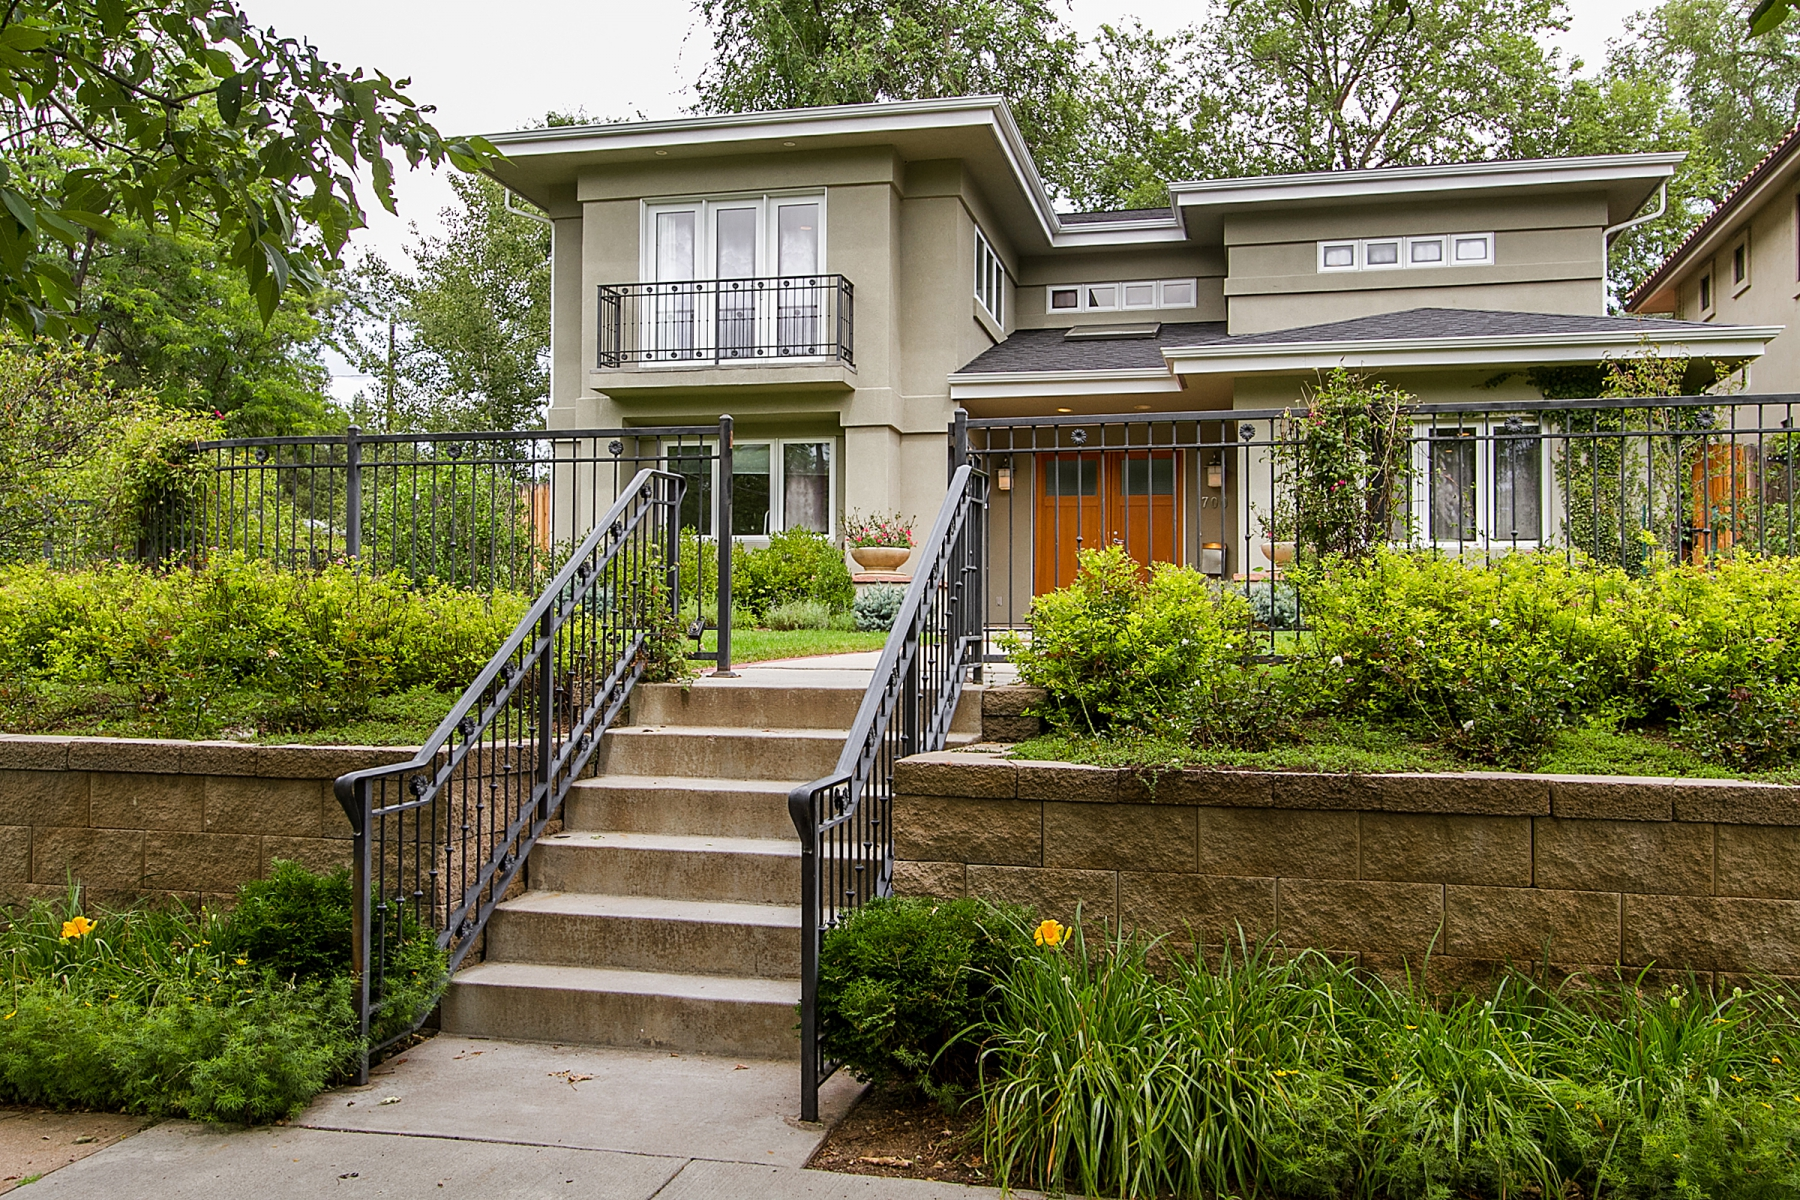 Single Family Home for Sale at Completely Remodeled Urban Contemporary Home 700 South Fillmore Street Denver, Colorado 80209 United States